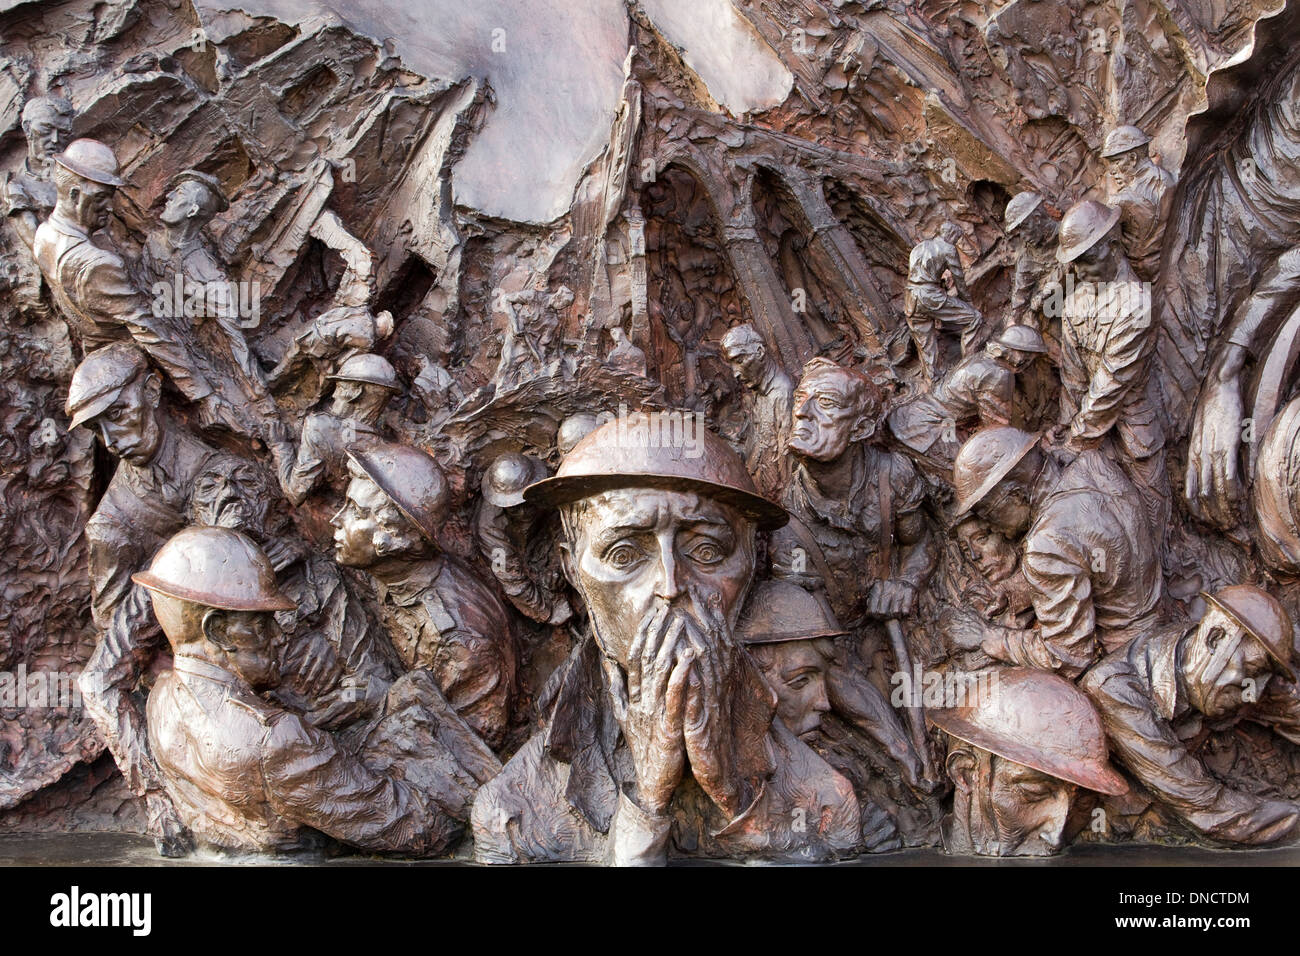 The Battle of Britain Monument in London sculpture on the Victoria Embankment overlooking the River Thames - Stock Image